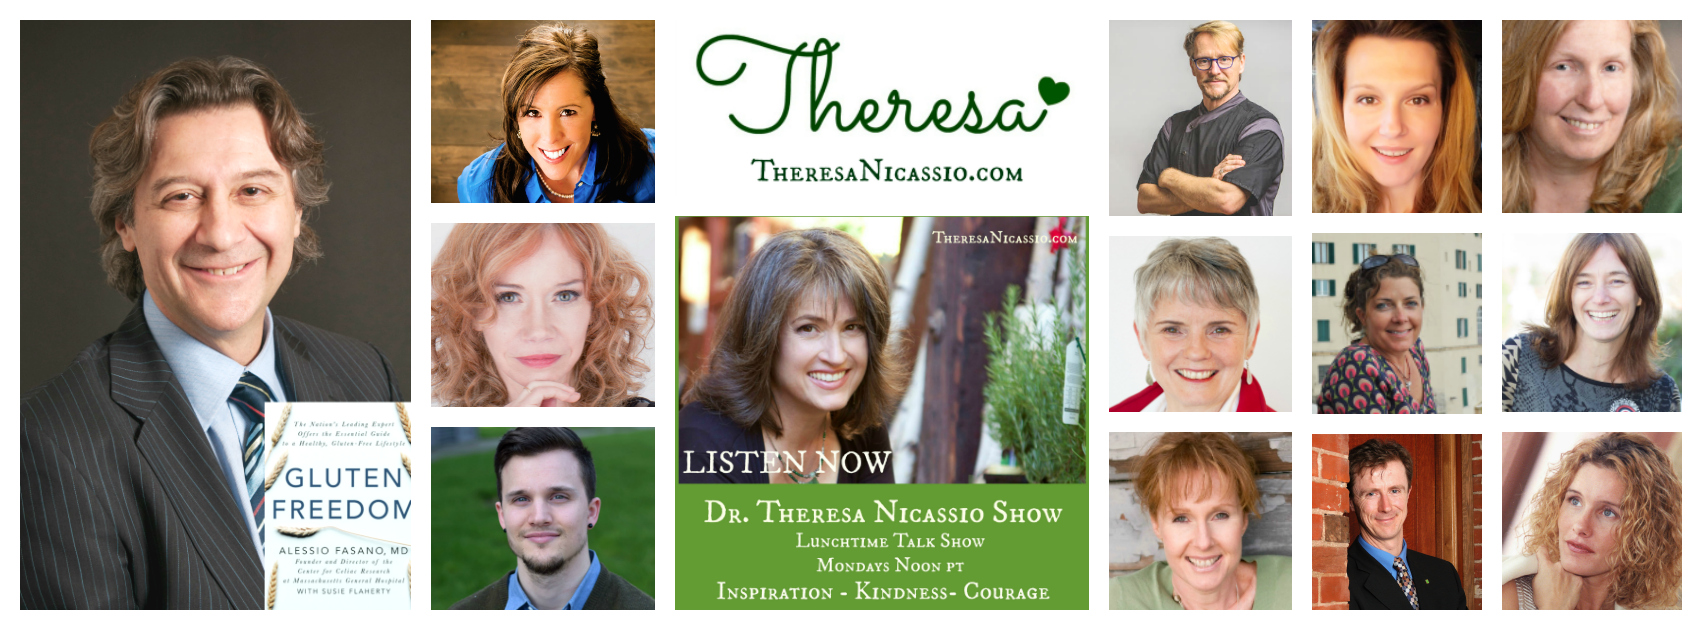 The Dr. Theresa Nicassio Show